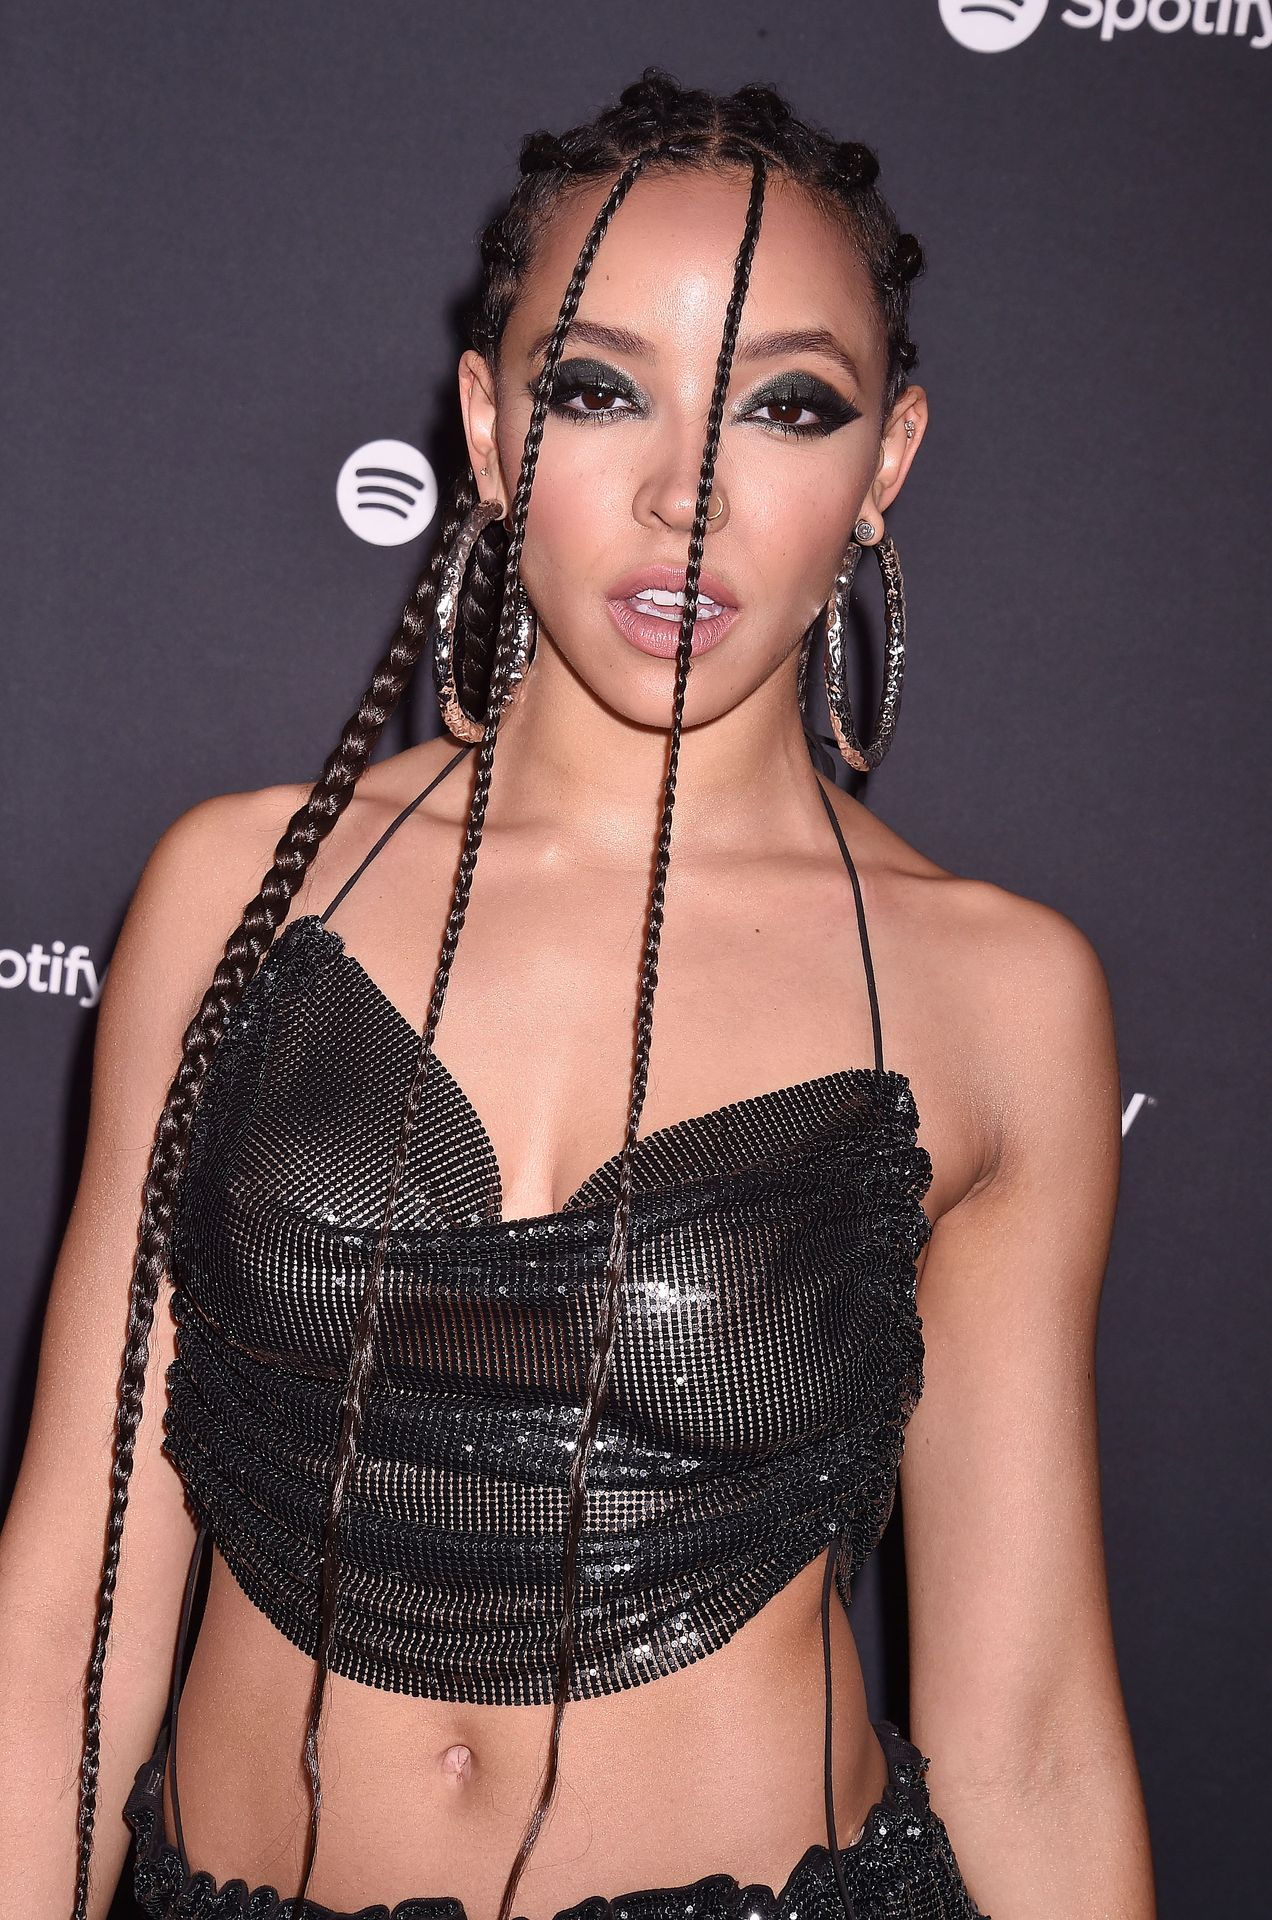 Tinashe Flaunts Her Tits At The Spotify Best New Artist Party 0024